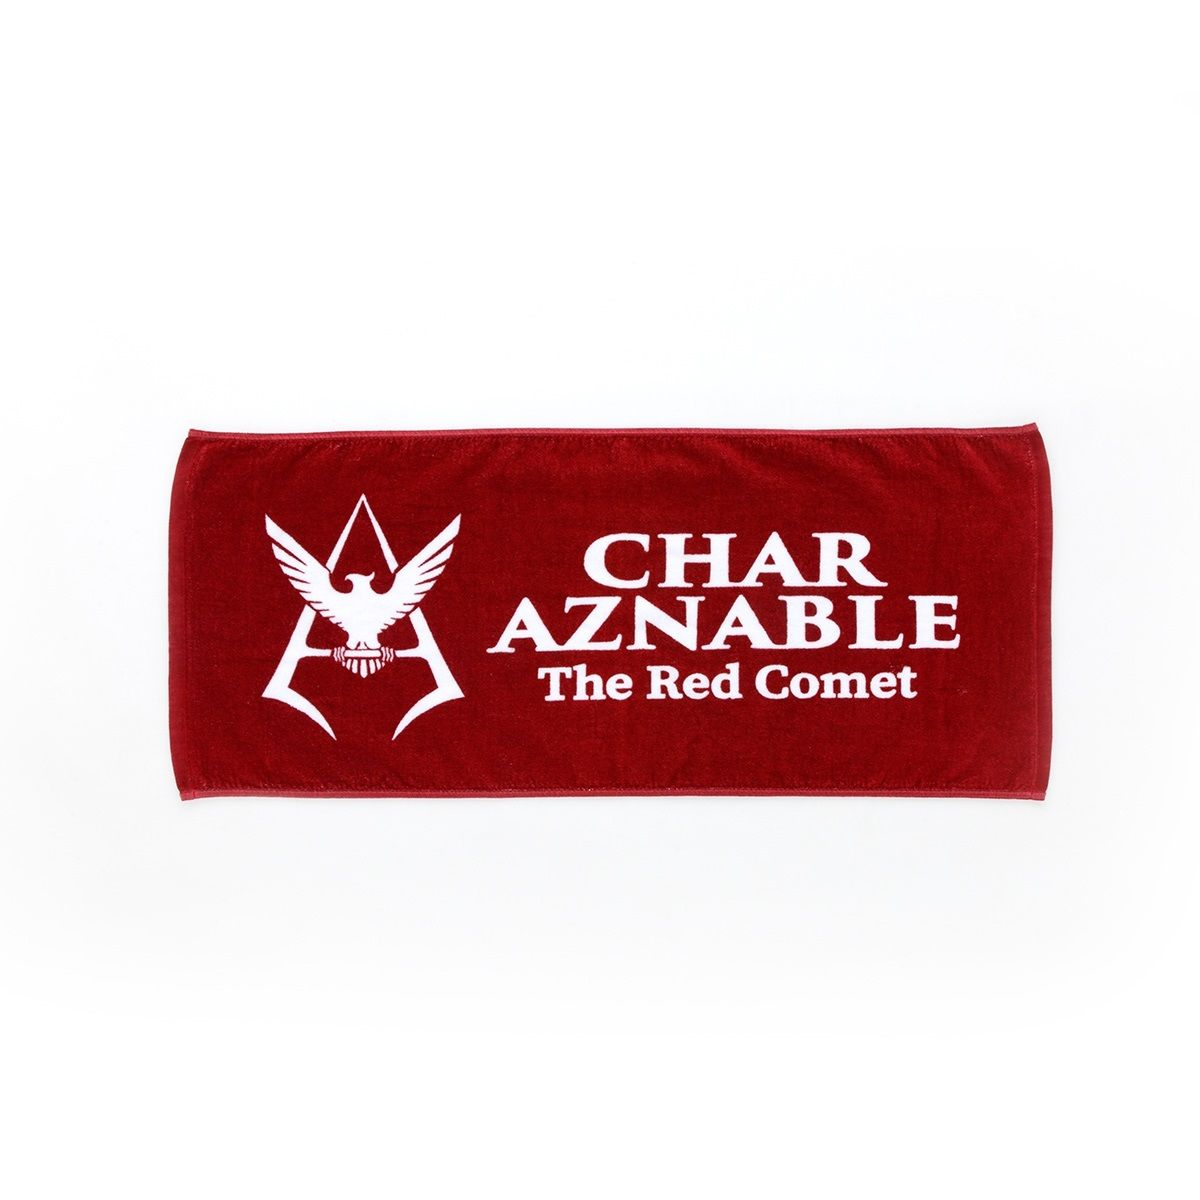 Mobile Suit Gundam Char Aznable Logo Face Towel